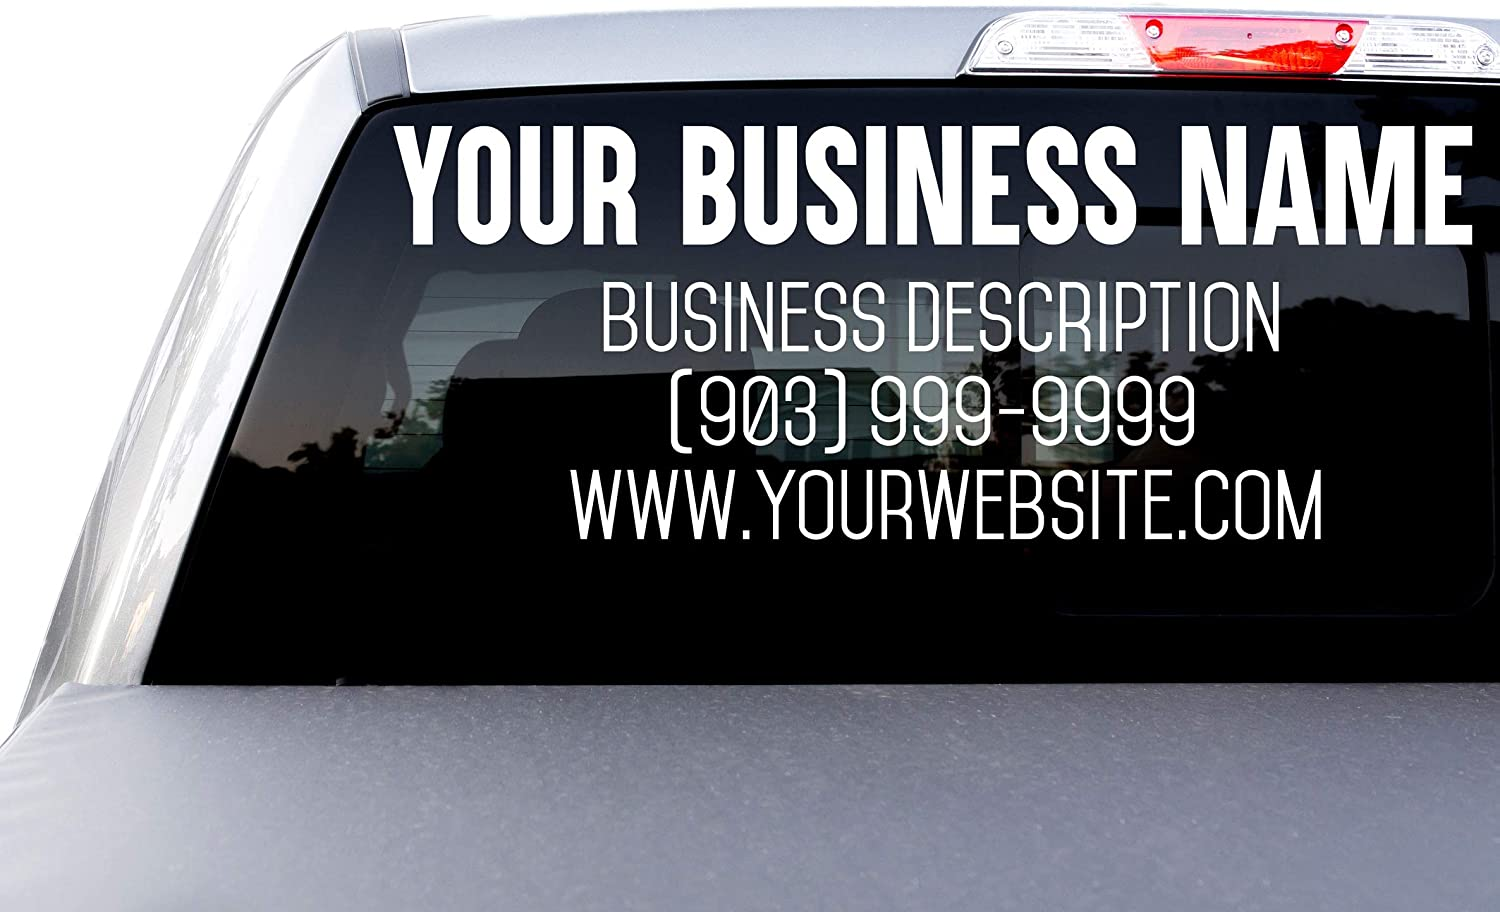 OFFer Large Custom Japan's largest assortment Business Name and Description Website St Text Decal